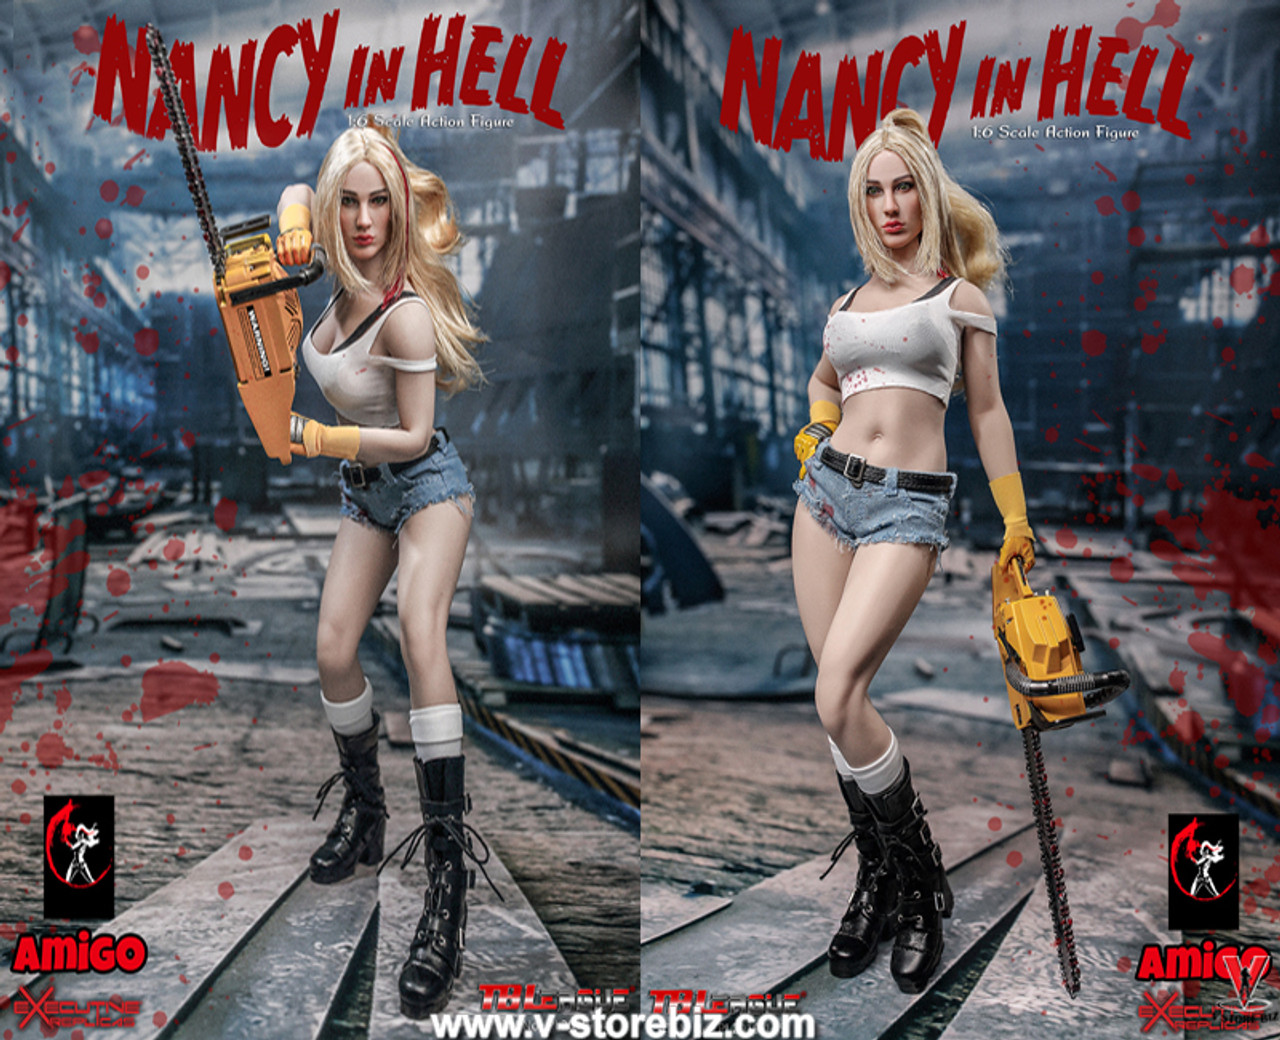 - 1//6 Scale Nancy in Hell Bloody White Stockings TBLeague Action Figures